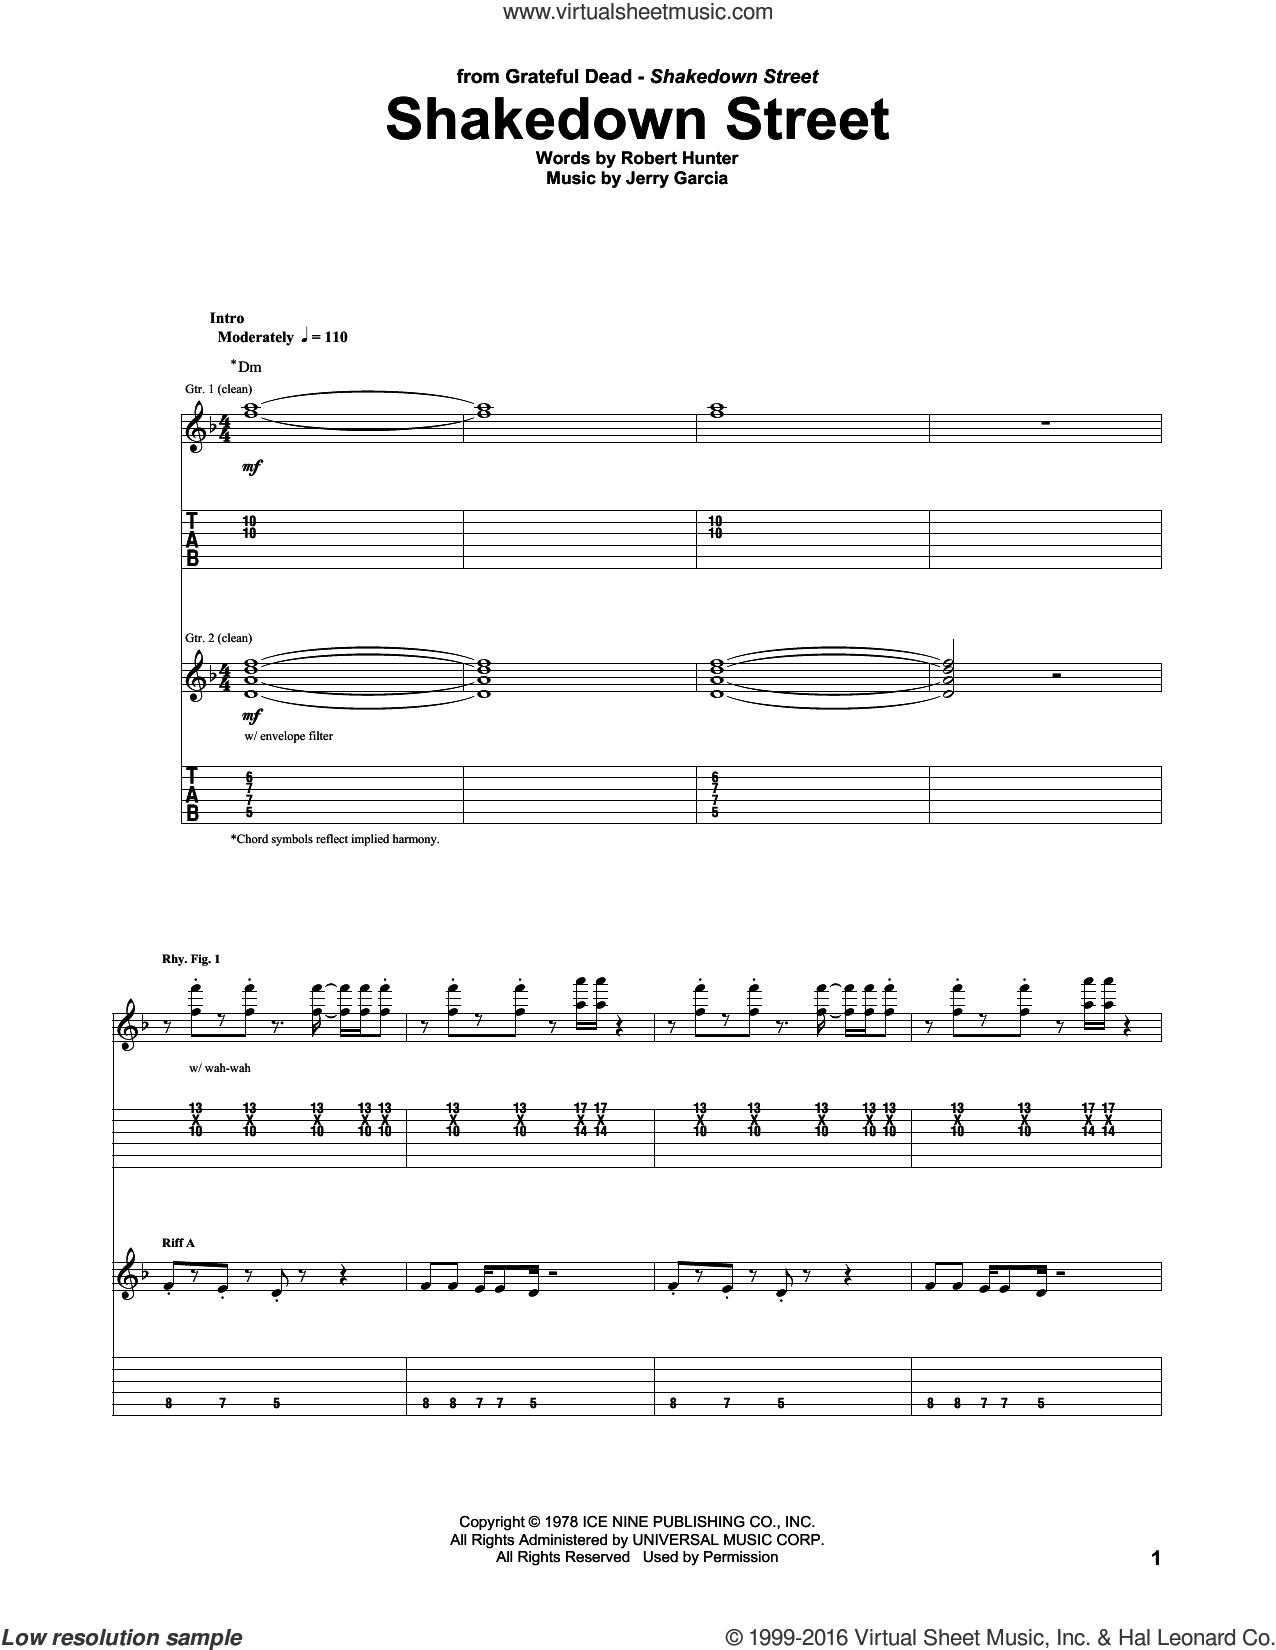 Shakedown Street sheet music for guitar (tablature) by Grateful Dead, Jerry Garcia and Robert Hunter, intermediate skill level